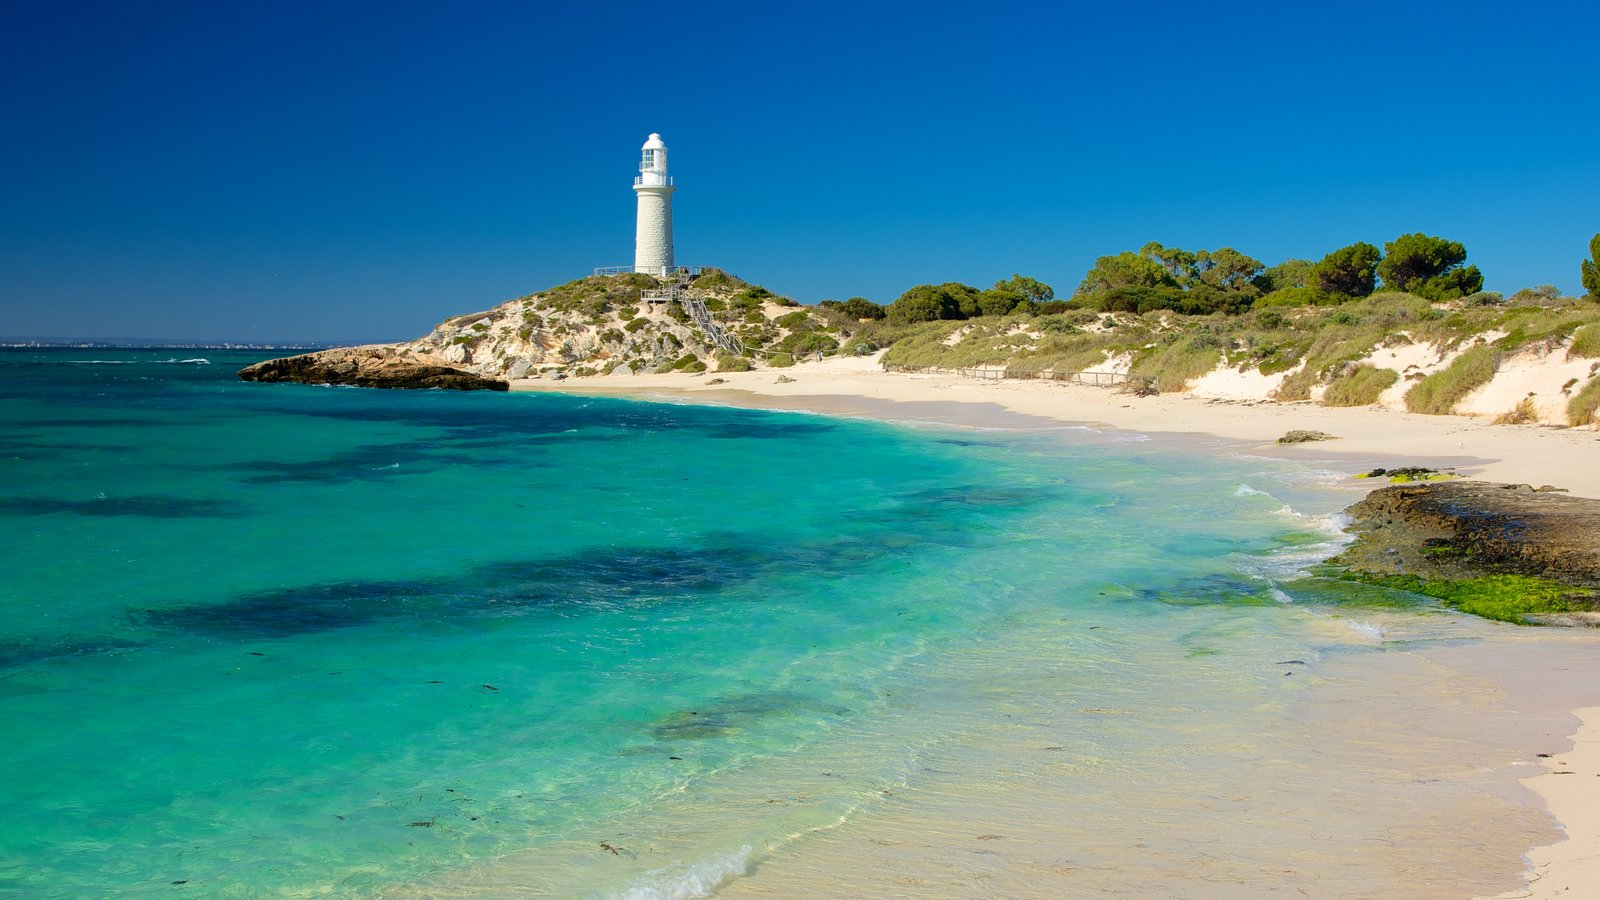 Rottnest Island showing landscape views, a lighthouse and a beach